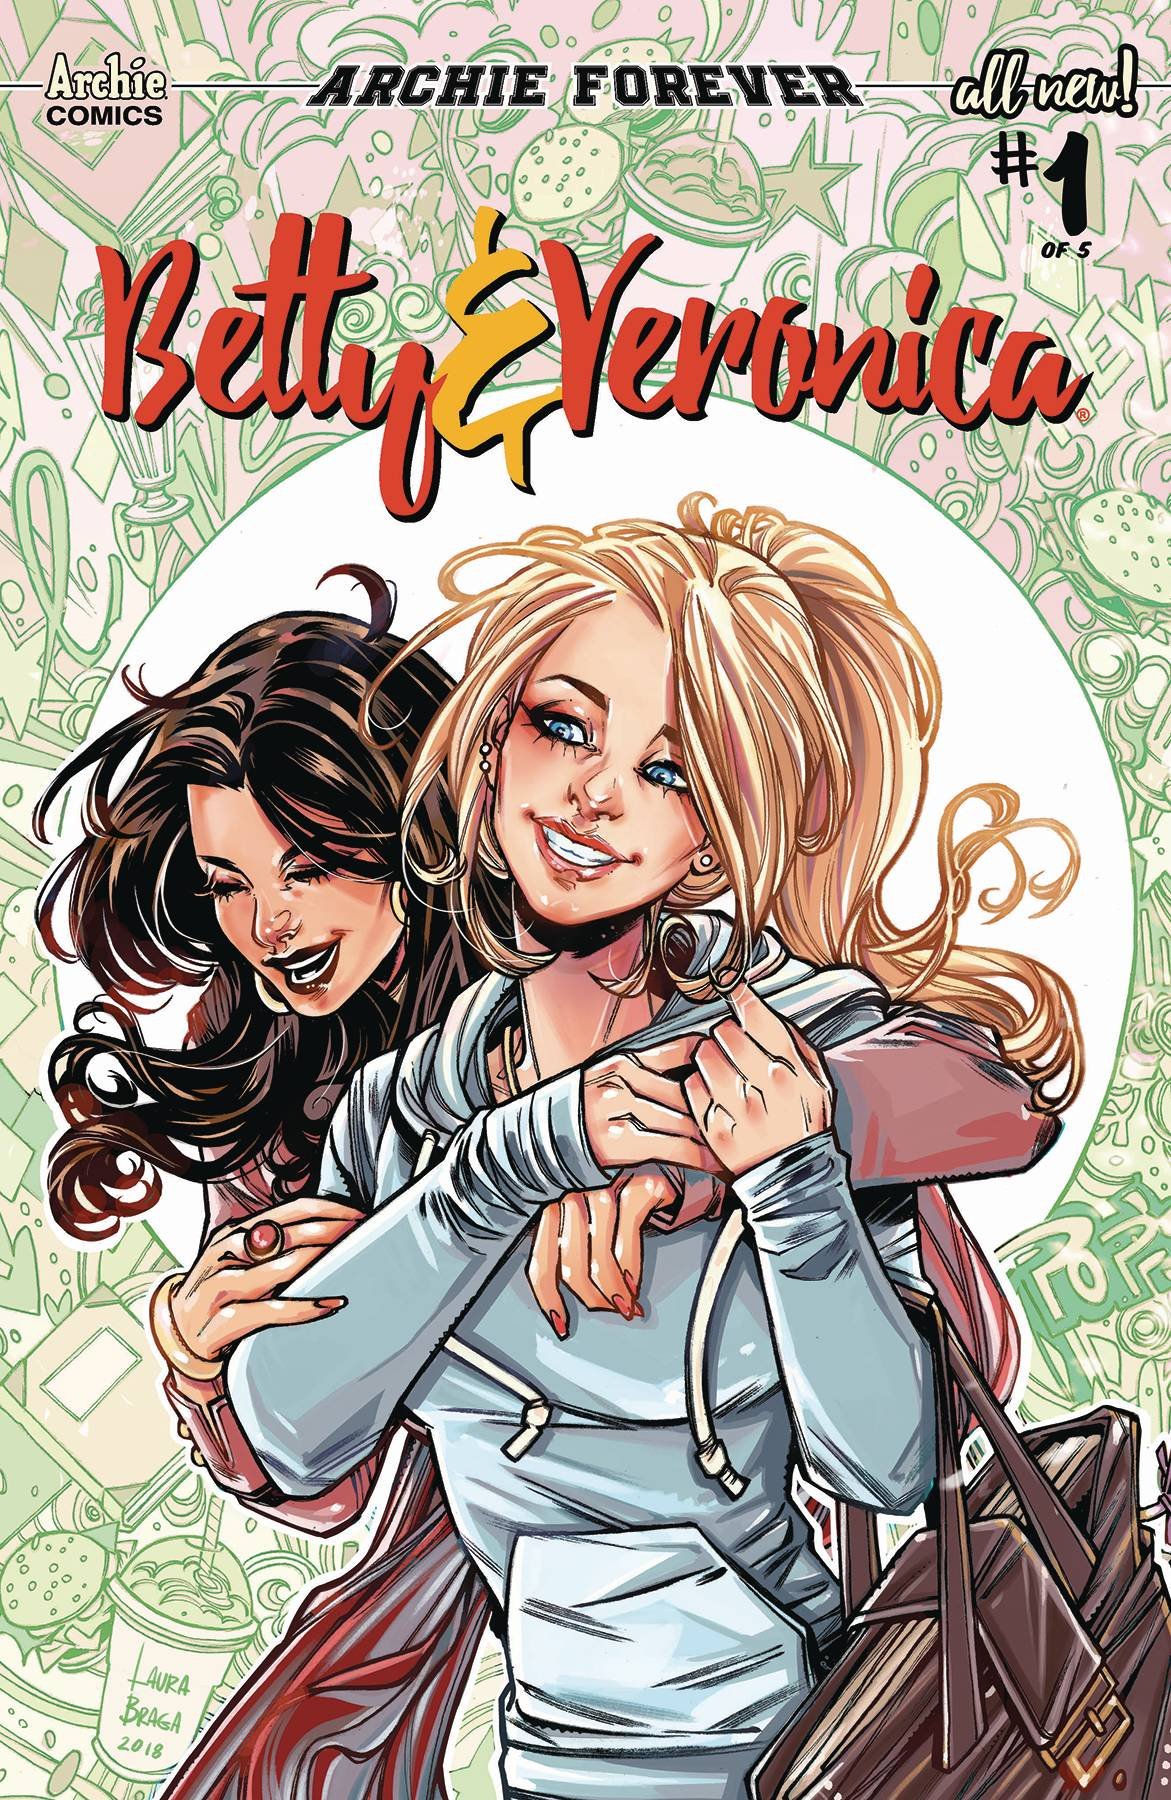 BETTY & VERONICA 1 of 5 CVR B BRAGA.jpg